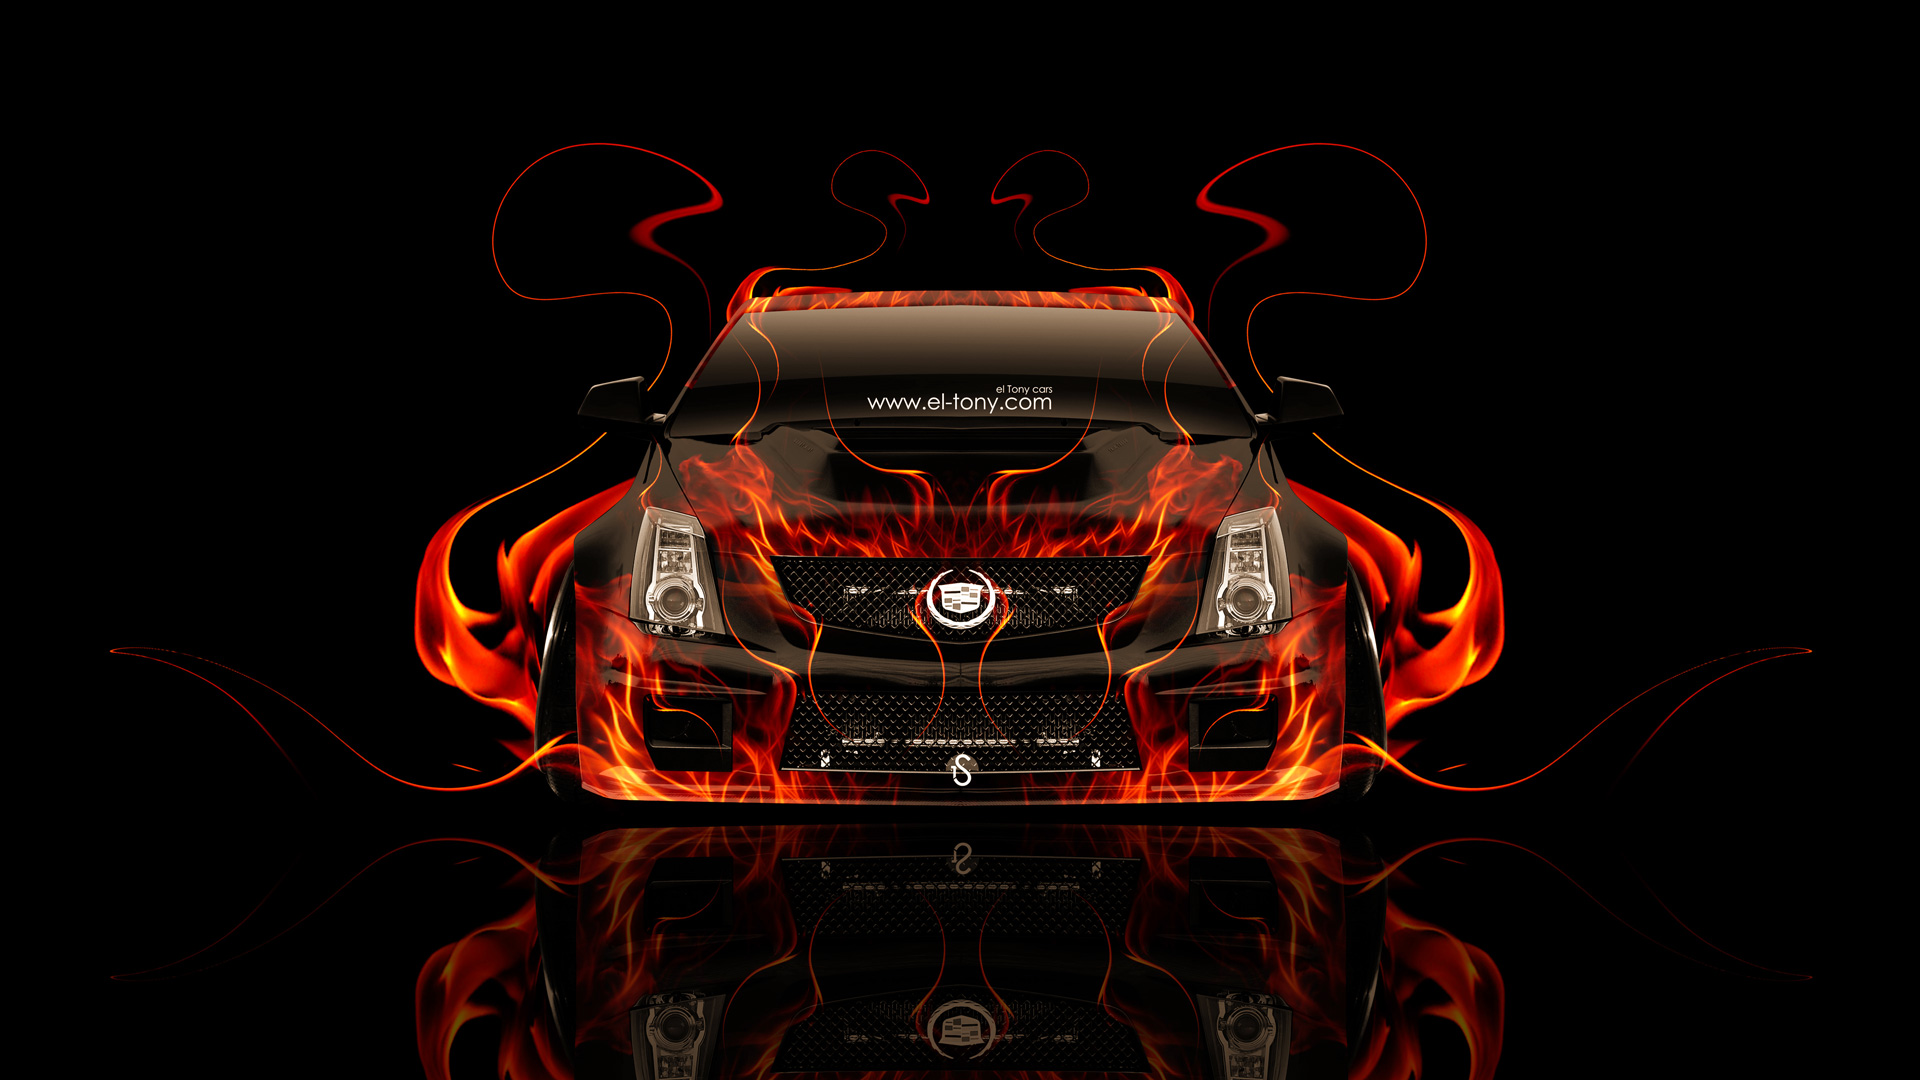 2017 Audi R8 Iphone Wallpaper Cadillac Cts V Hennessey Tuning Front Fire Car 2014 El Tony